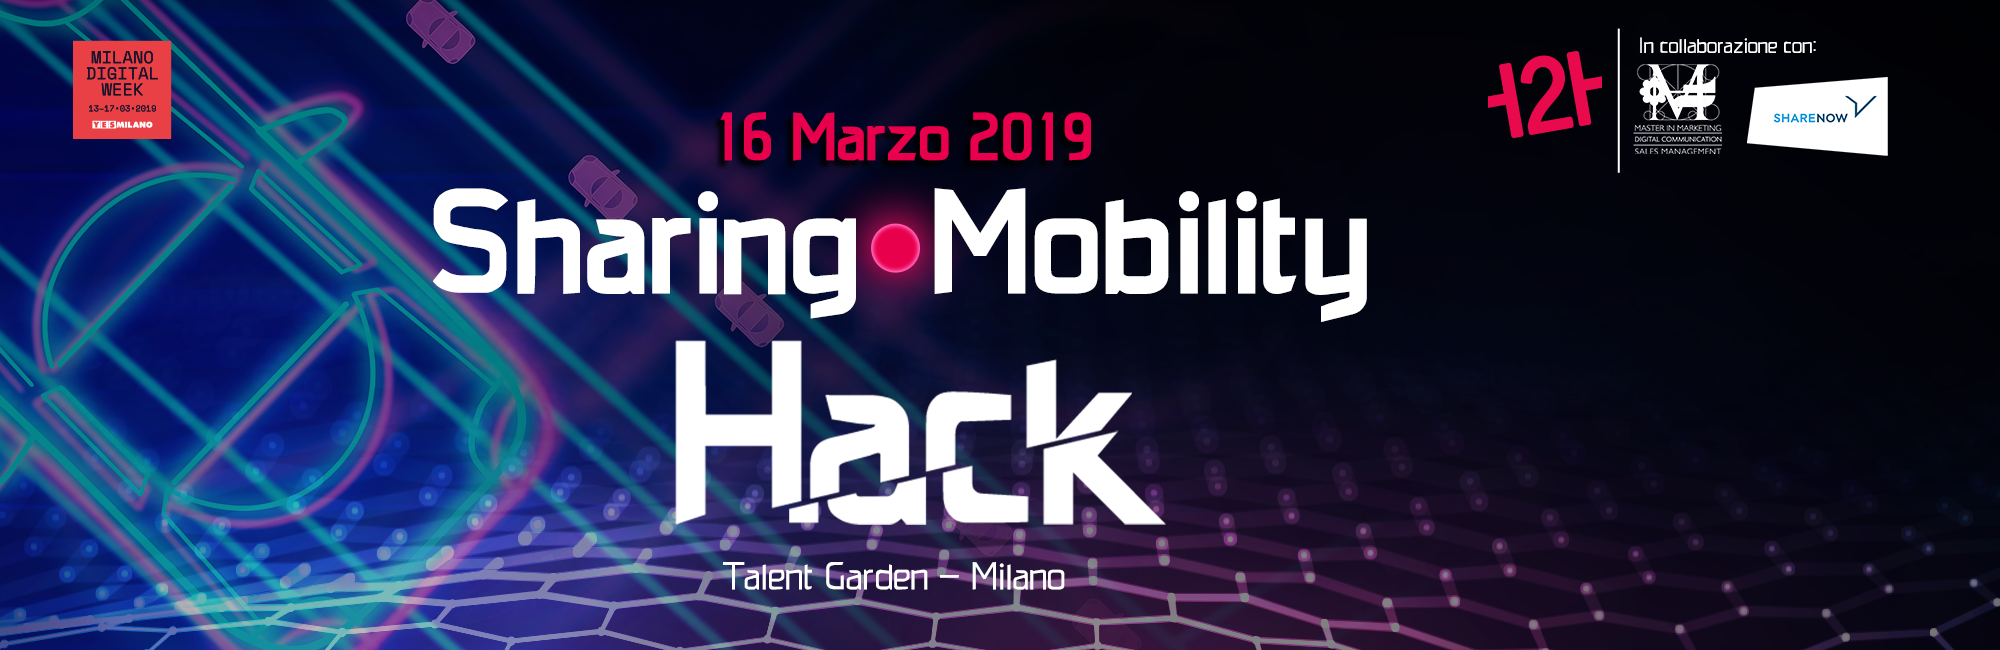 Sharing Mobility Hack, Hackathon, Milano Digital Week, H2H